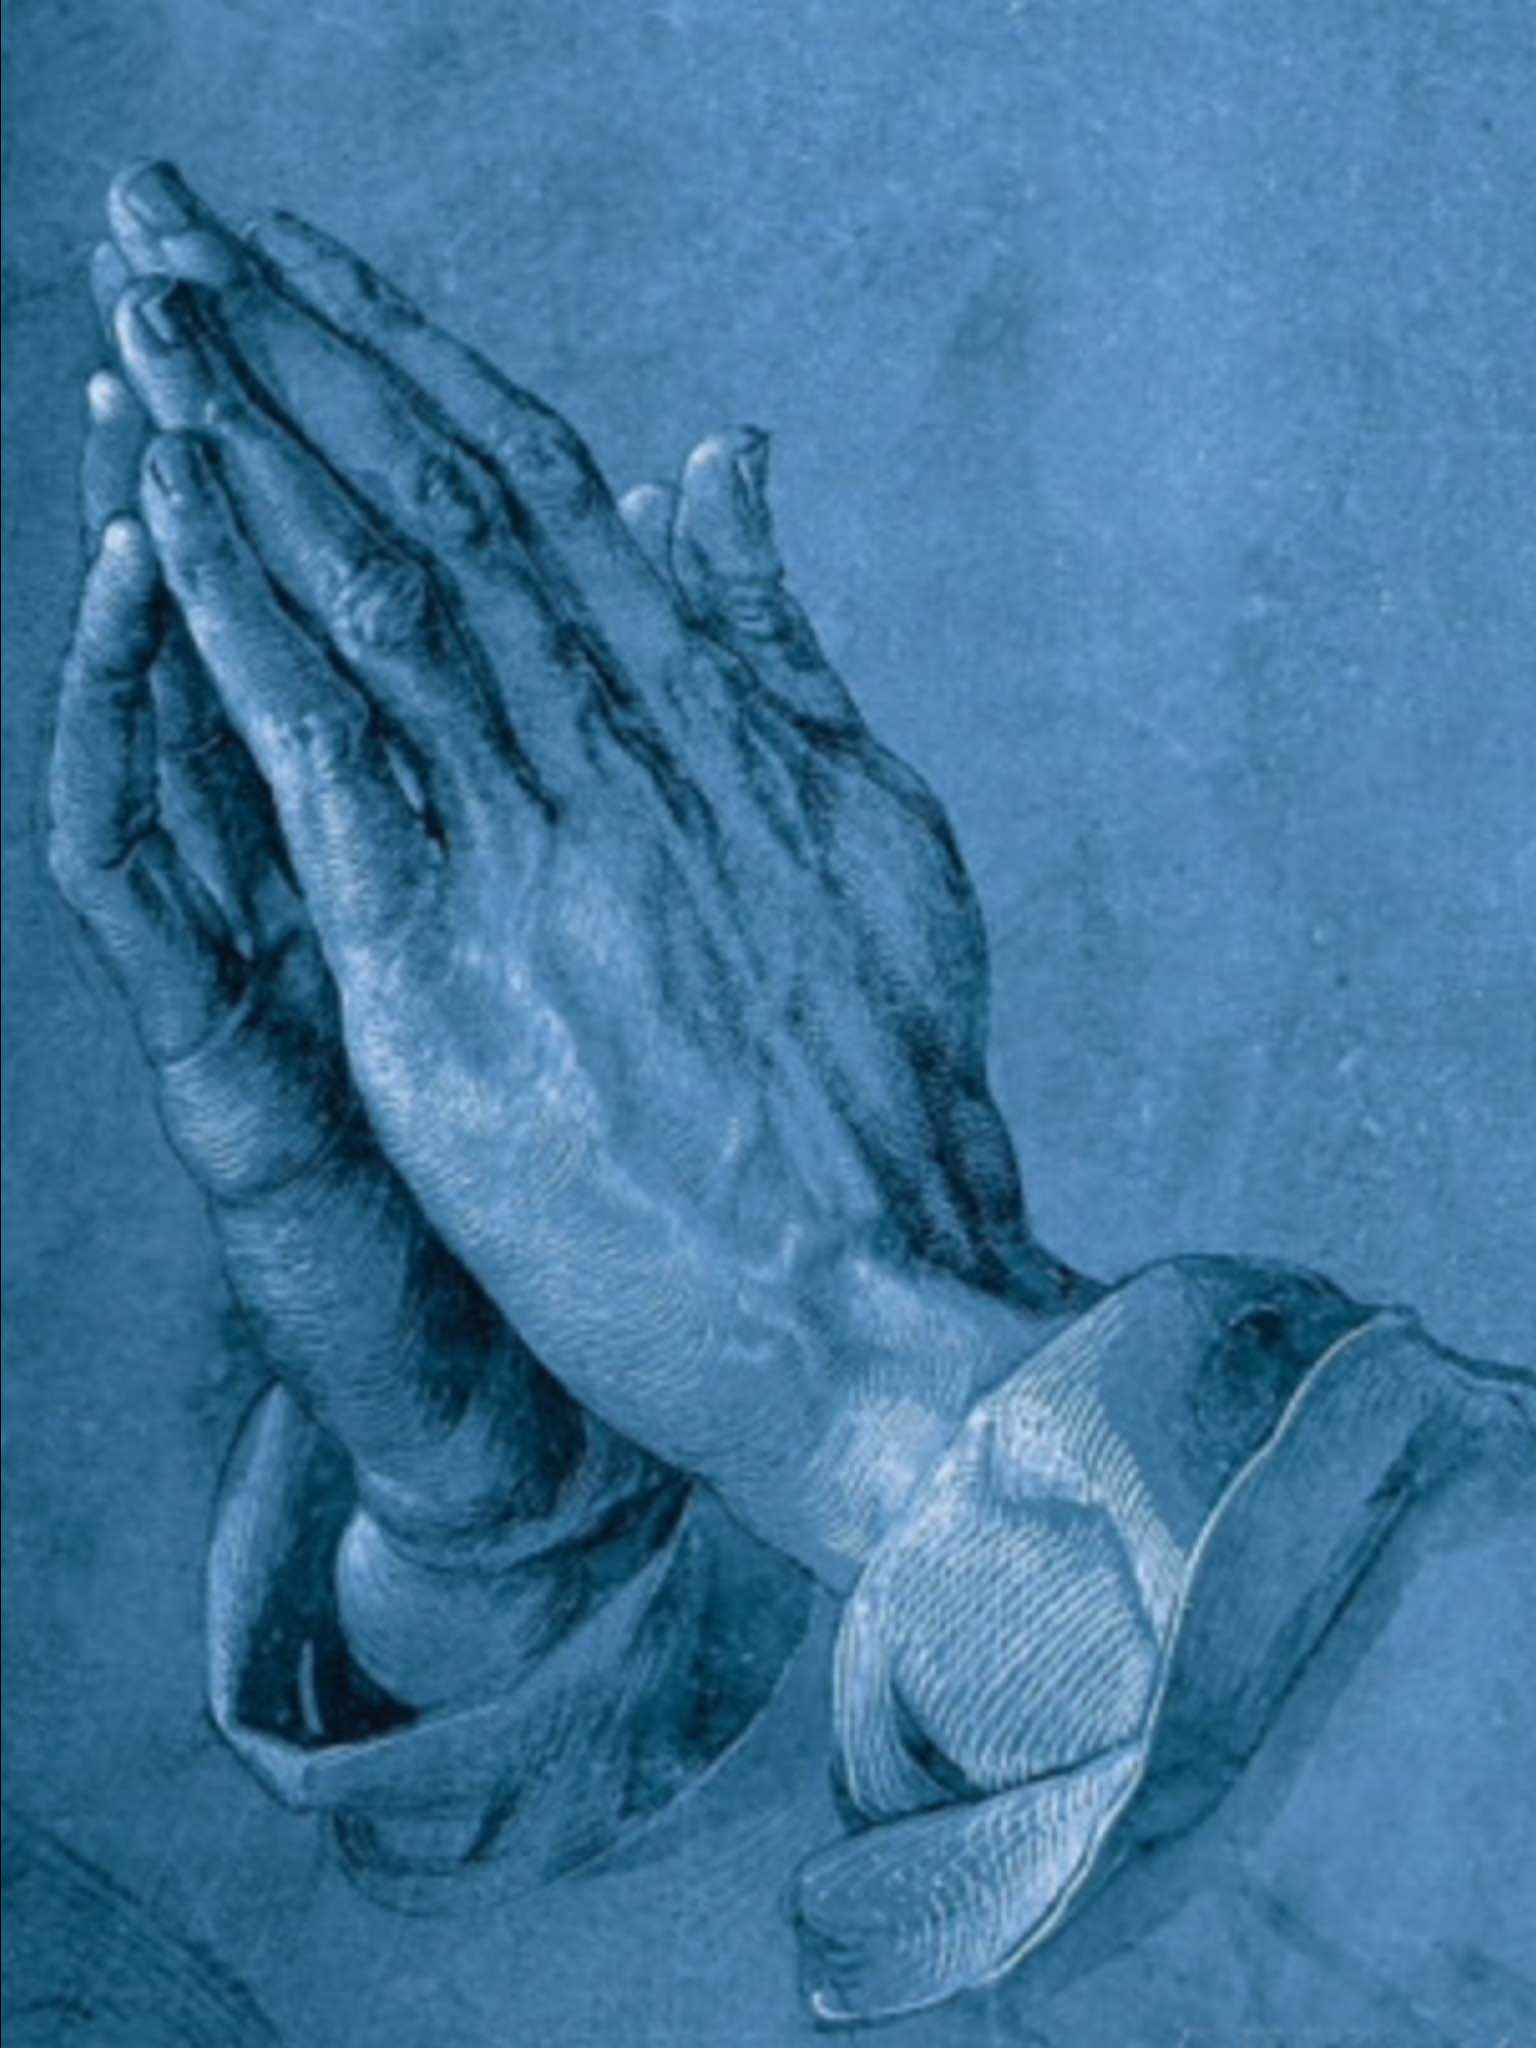 Durers Praying Hands